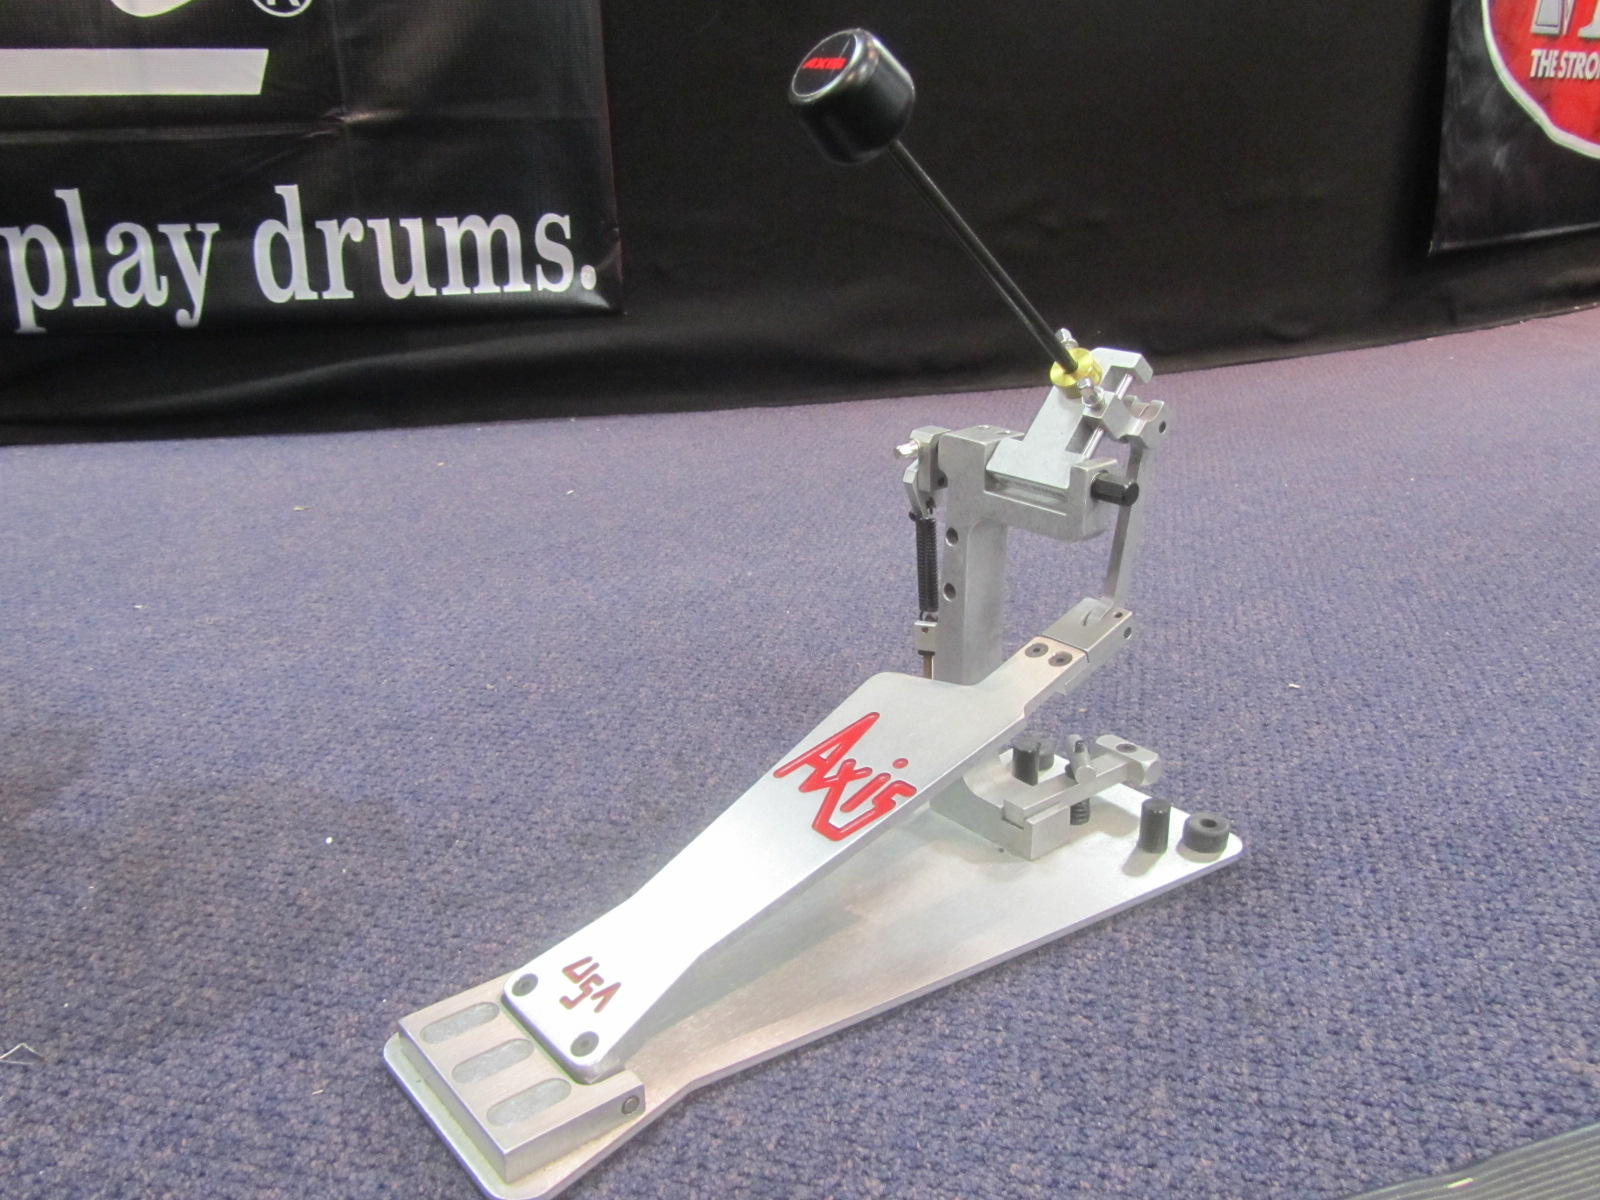 Axis - Axis A Single Foot Pedal